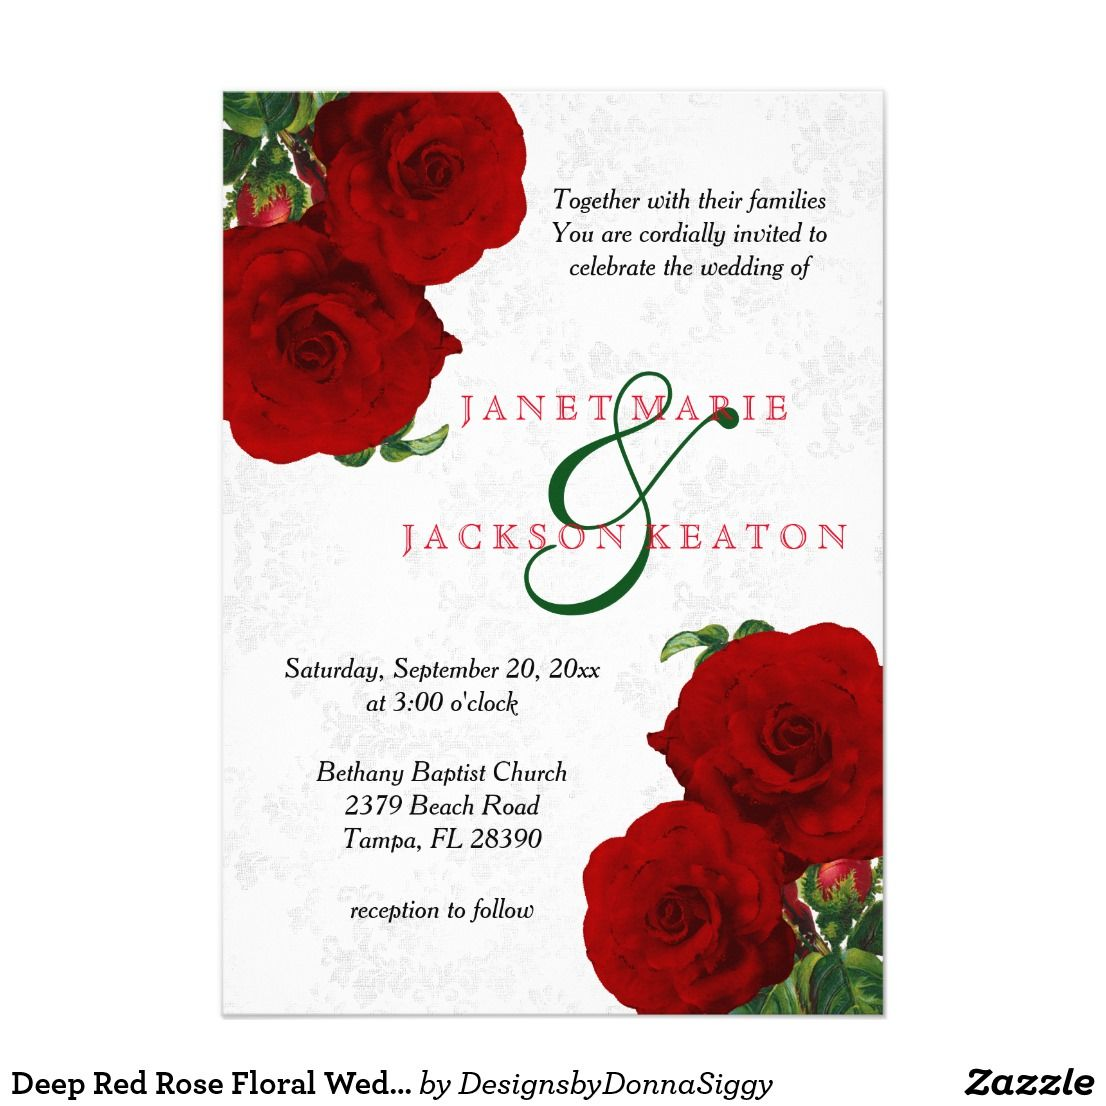 Deep Red Rose Floral Wedding Invitation | Stuff SOLD on Zazzle ...